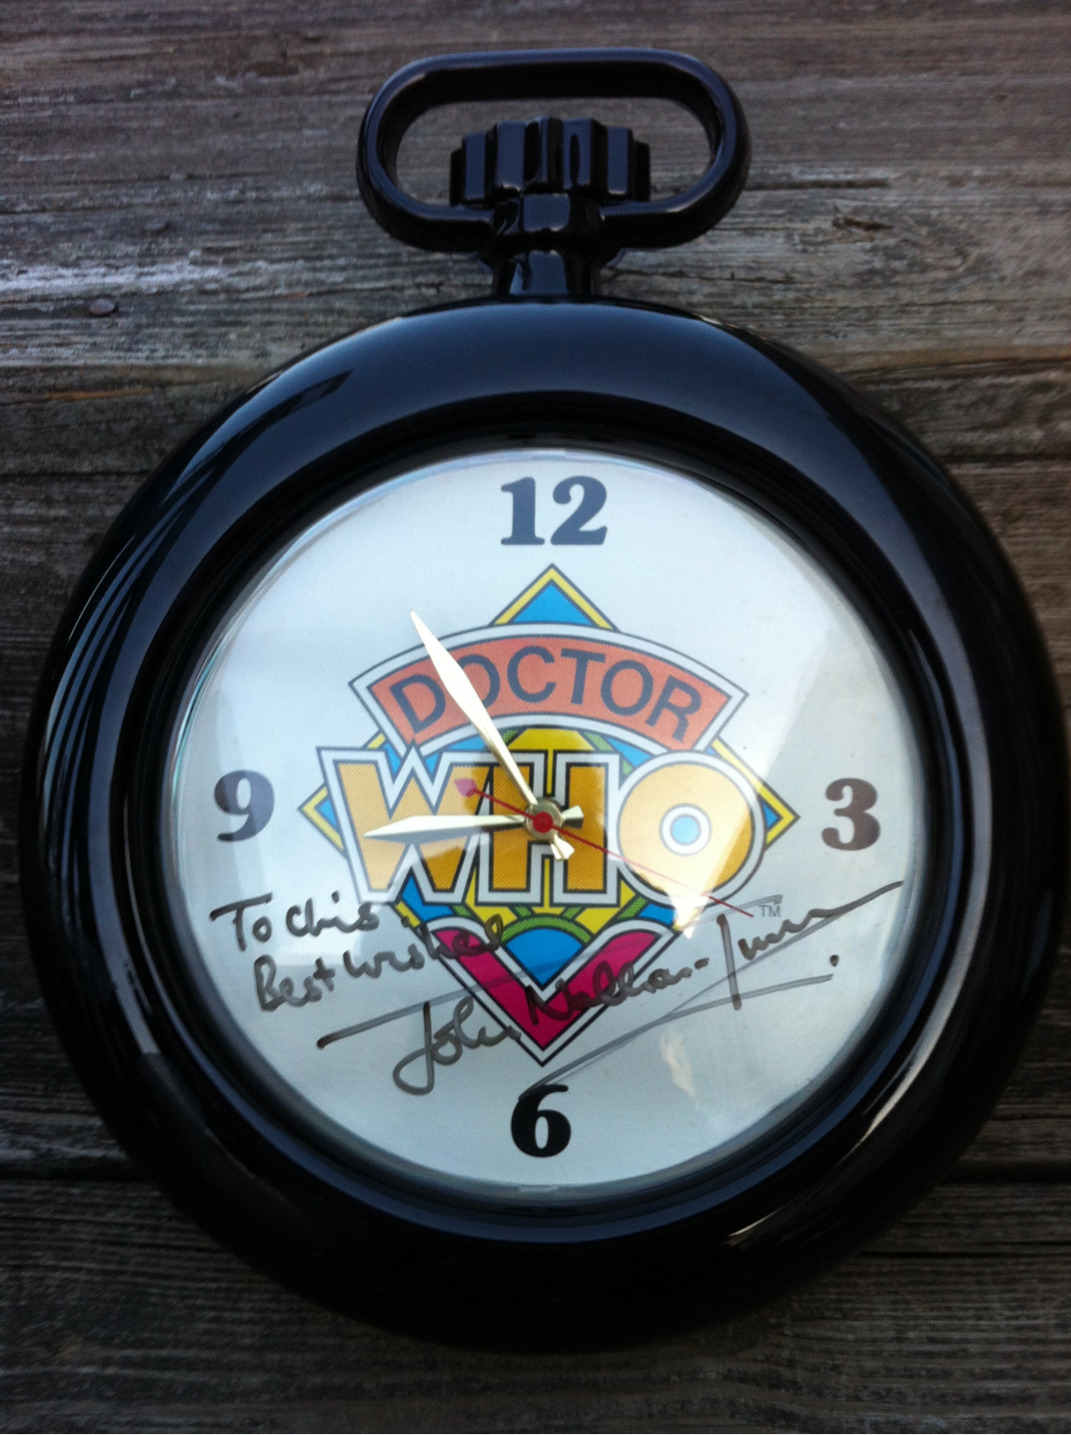 Rare official #DoctorWho wall clock signed by JNT sold exclusively via the Gallifreyan Embassy in the mid 1980s. Unearthed by #Sandy. See forthcoming video for more info.